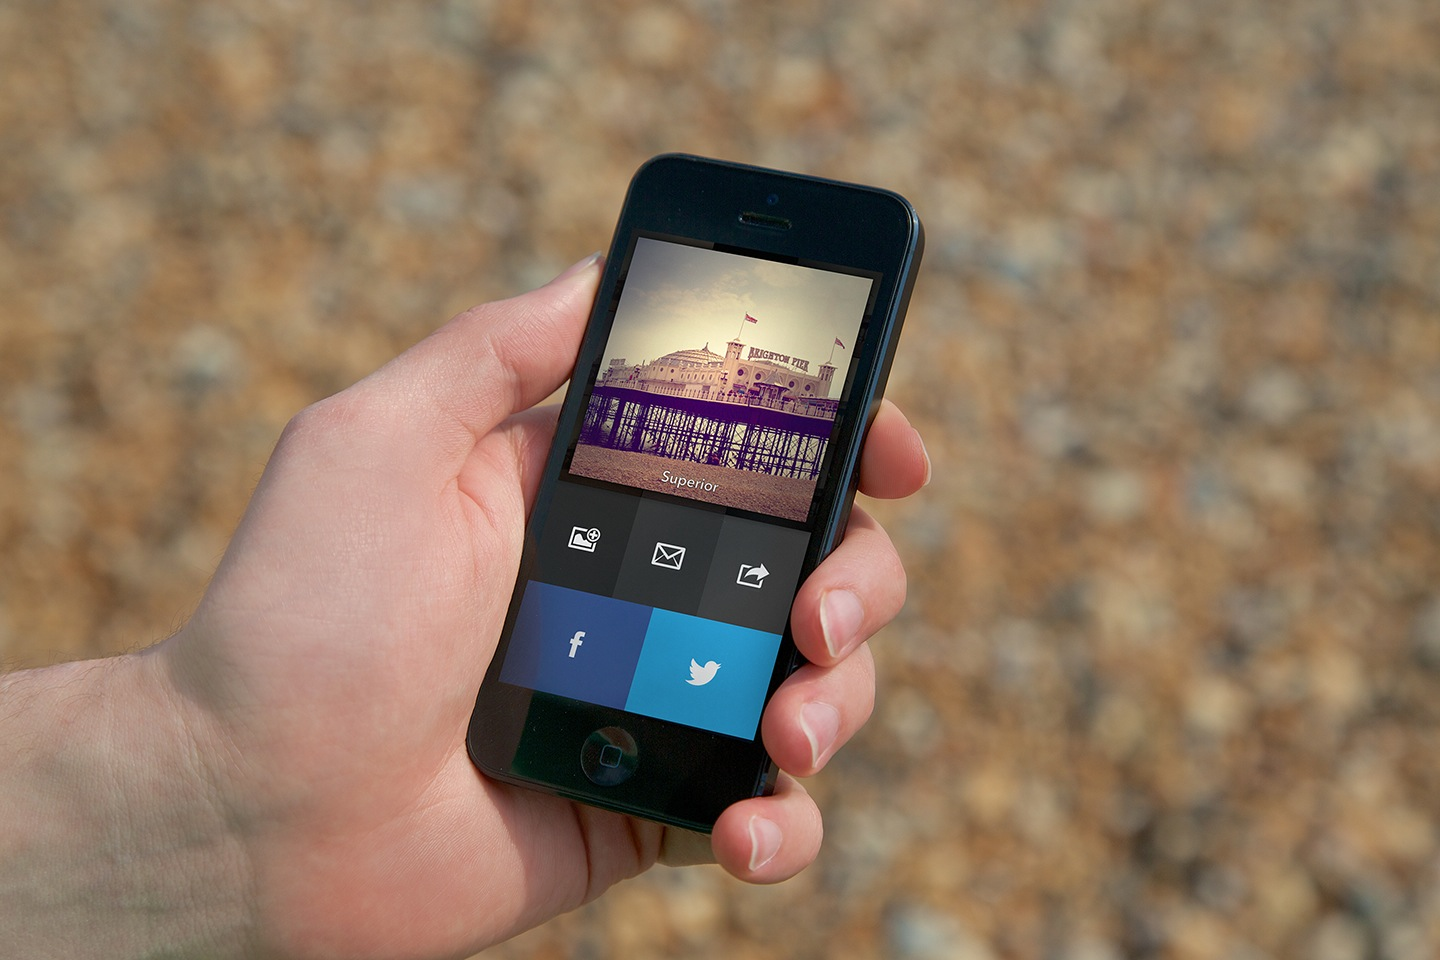 Analog Camera 1.0 for iOS (Lifestyle, Image View)